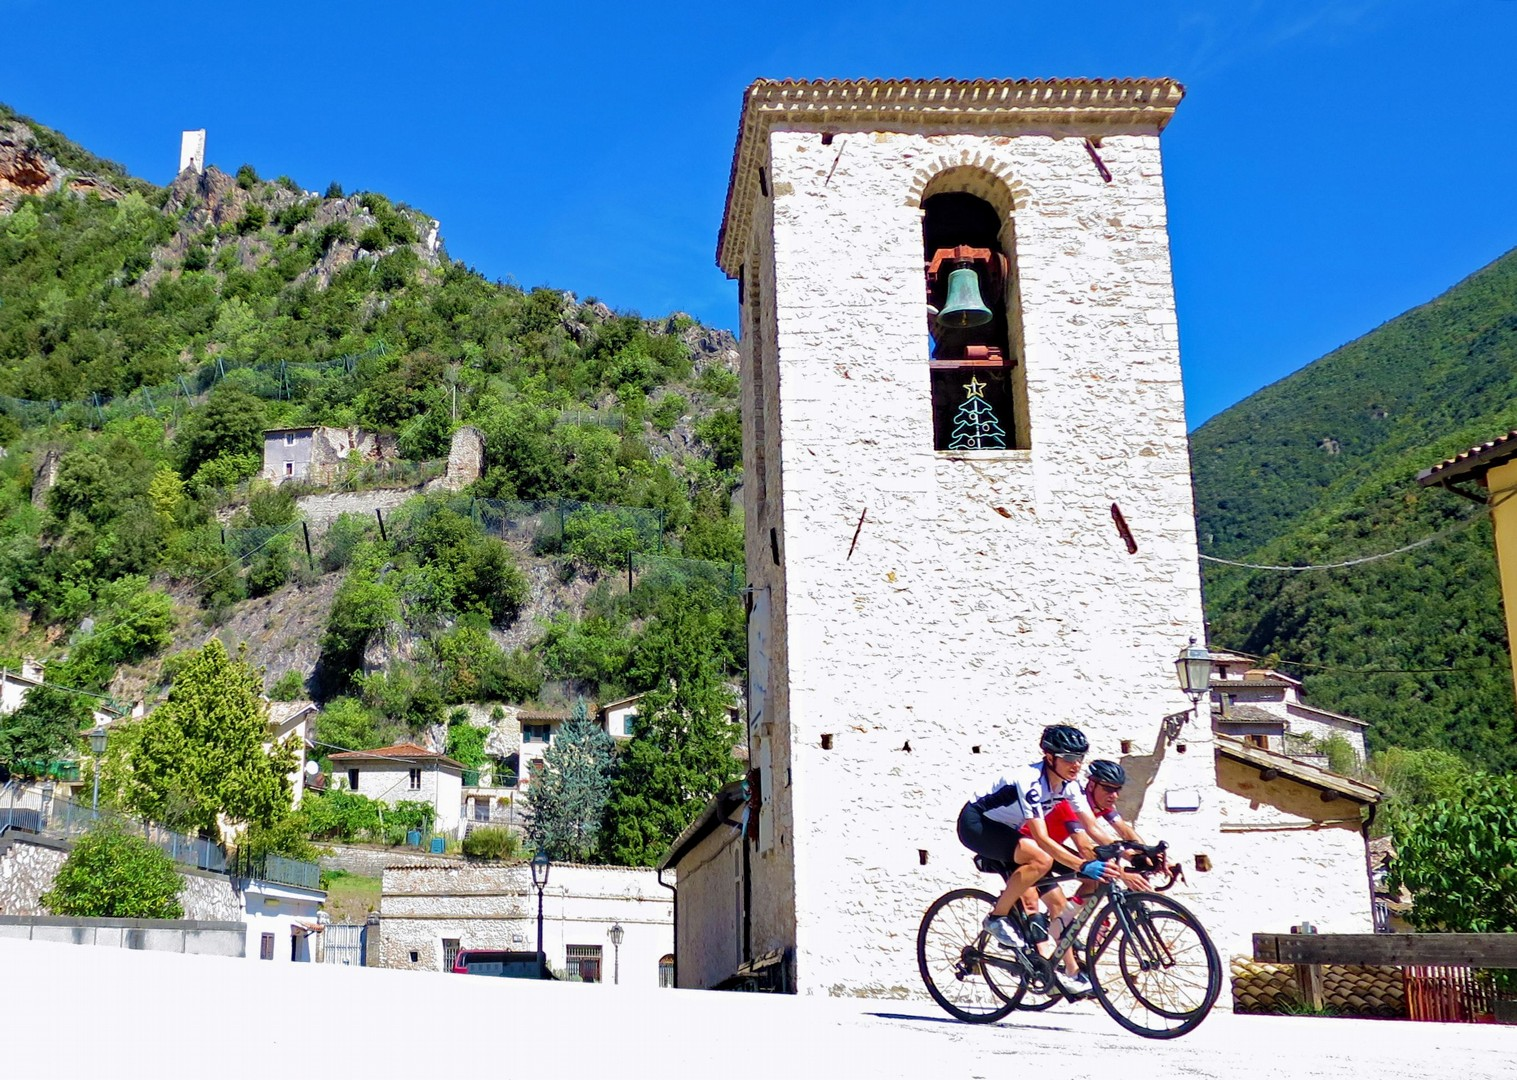 grand-traverse-guided-road-cycling-adventure.jpg - Italy - Grand Traverse - North to South (17 days) - Guided Road Cycling Holiday - Italia Road Cycling